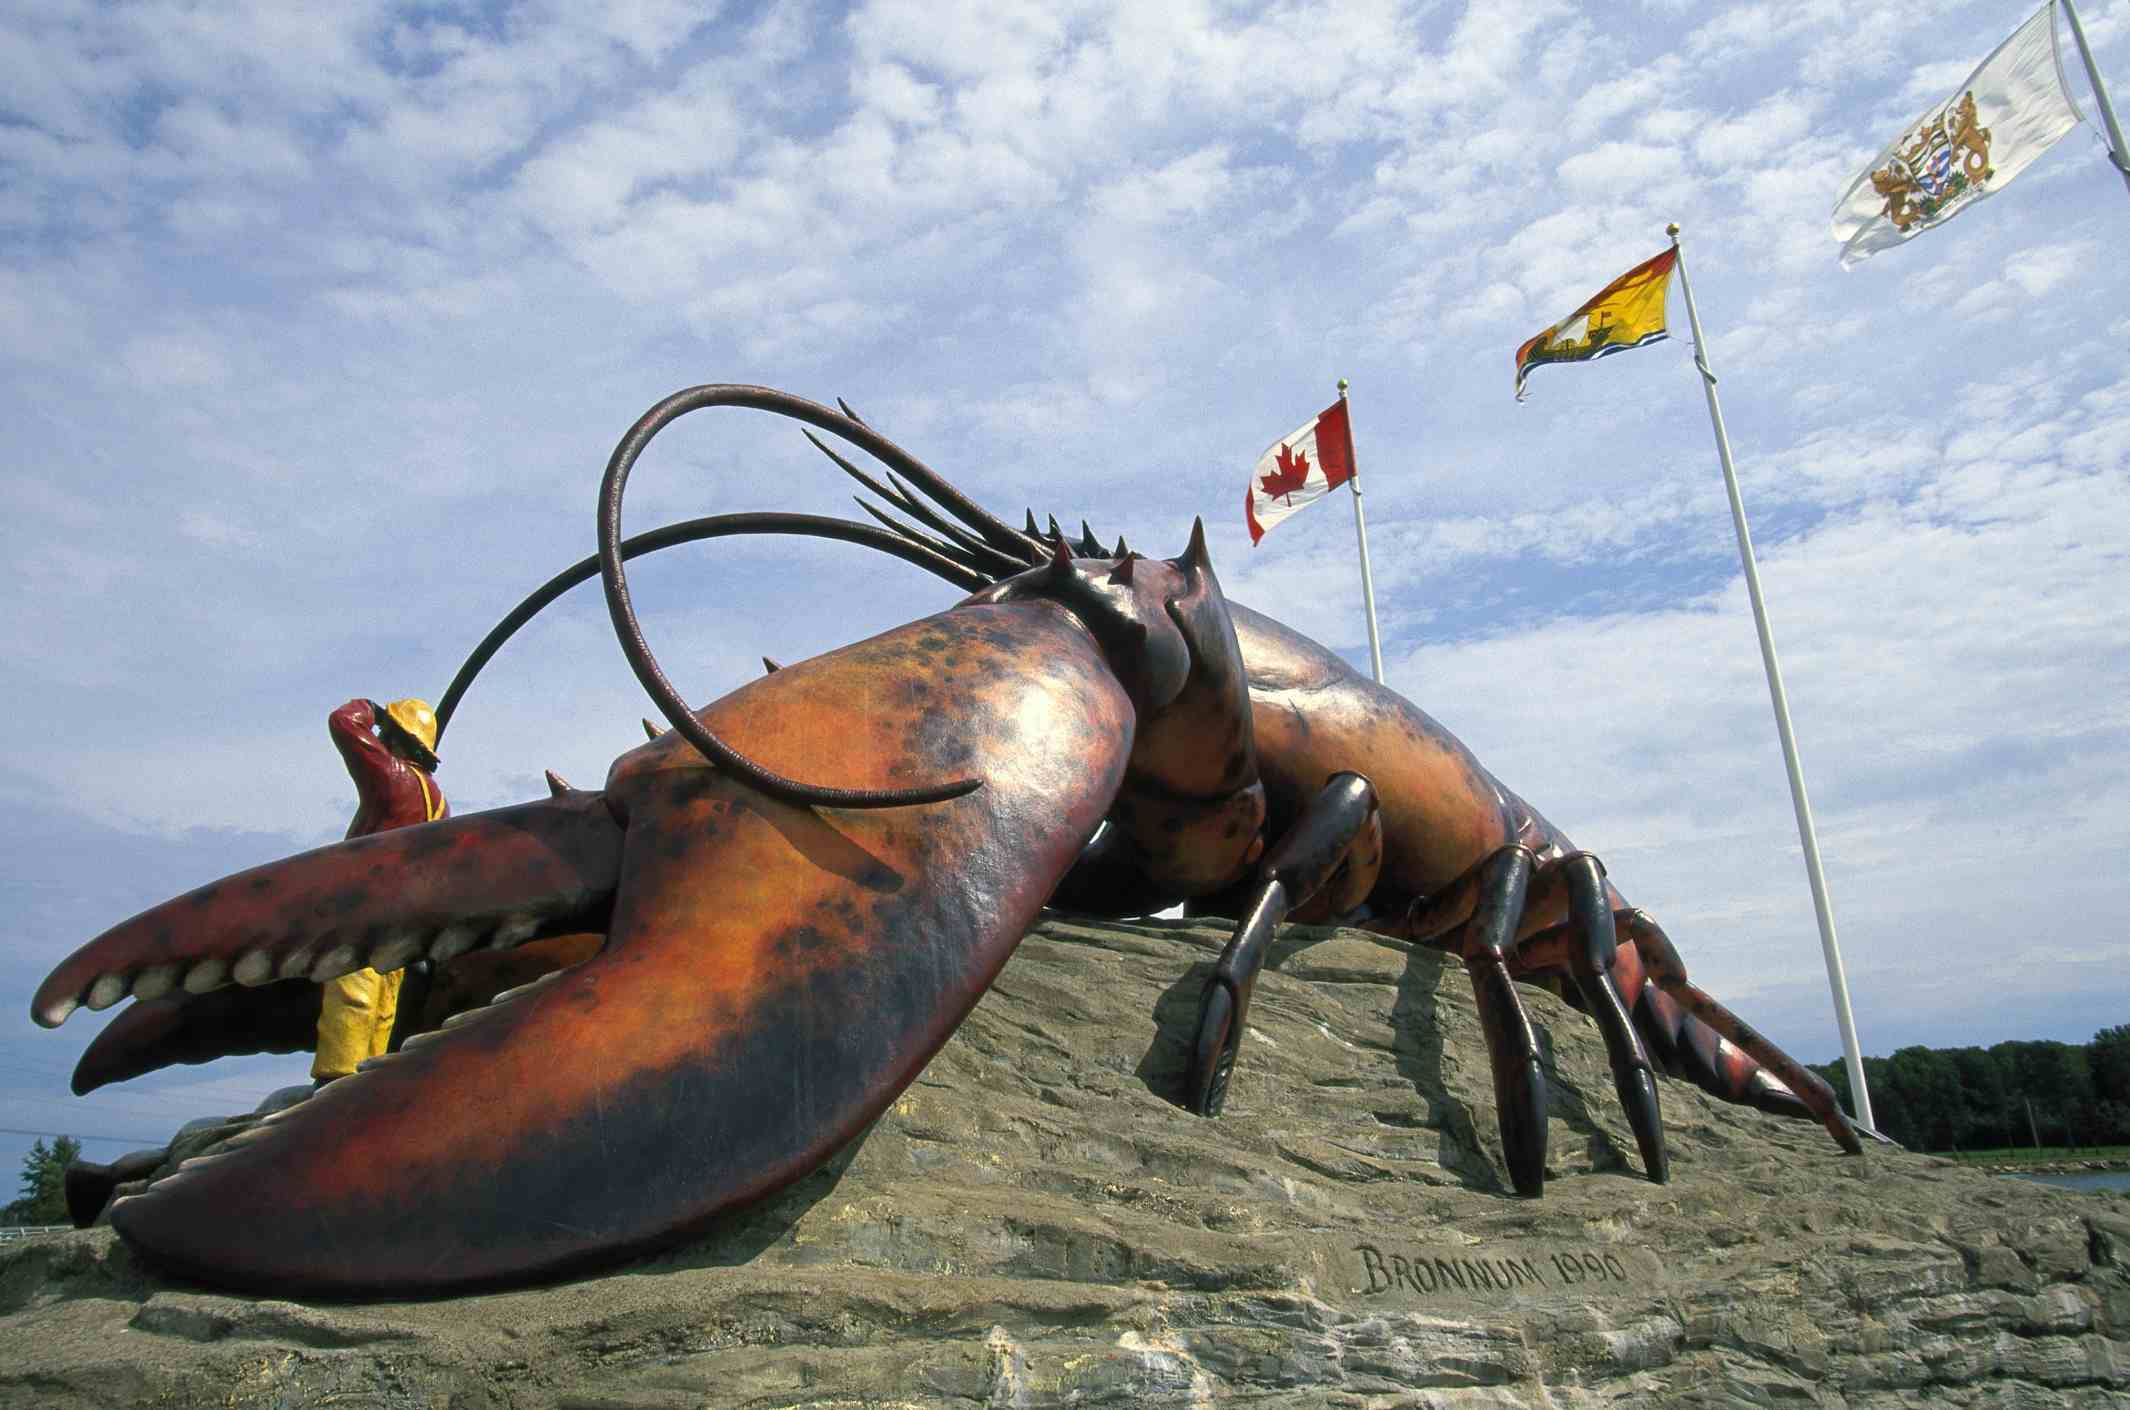 World's Largest Lobster, New Brunswick / Walter Bibikow / Photolibrary / Getty Images